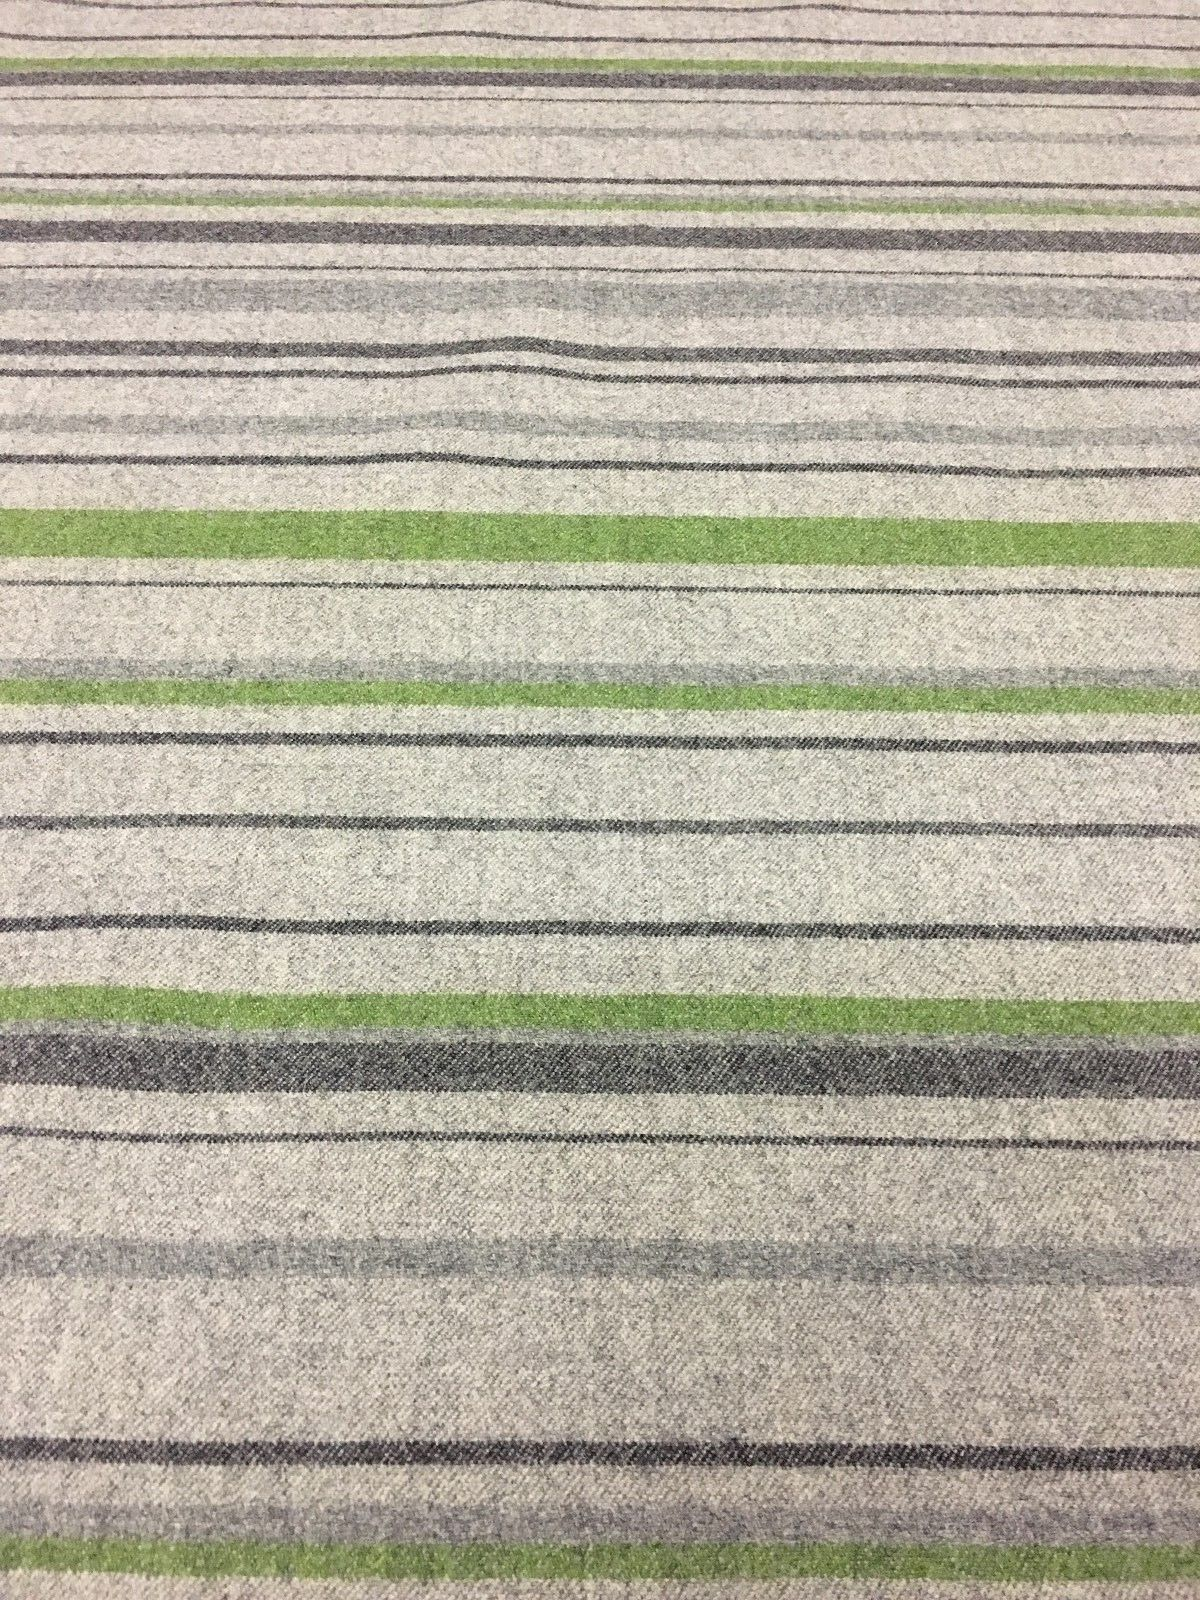 8.25 yds Wool Upholstery Fabric Green and Gray Stripe BB